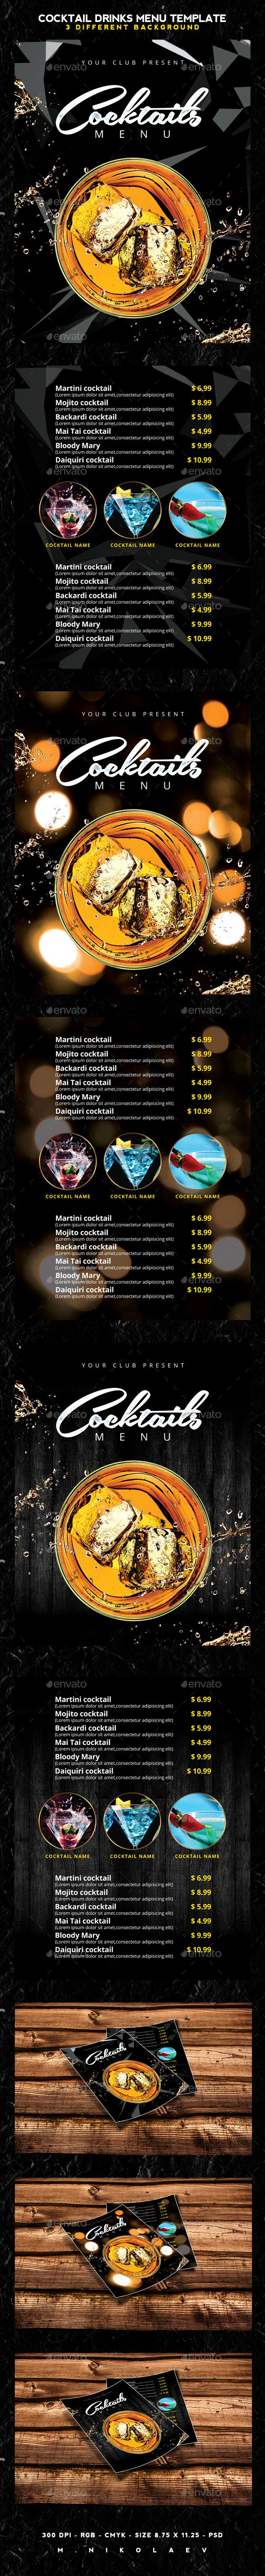 Cocktail Drinks Menu  Drink Menu Menu And Food Menu